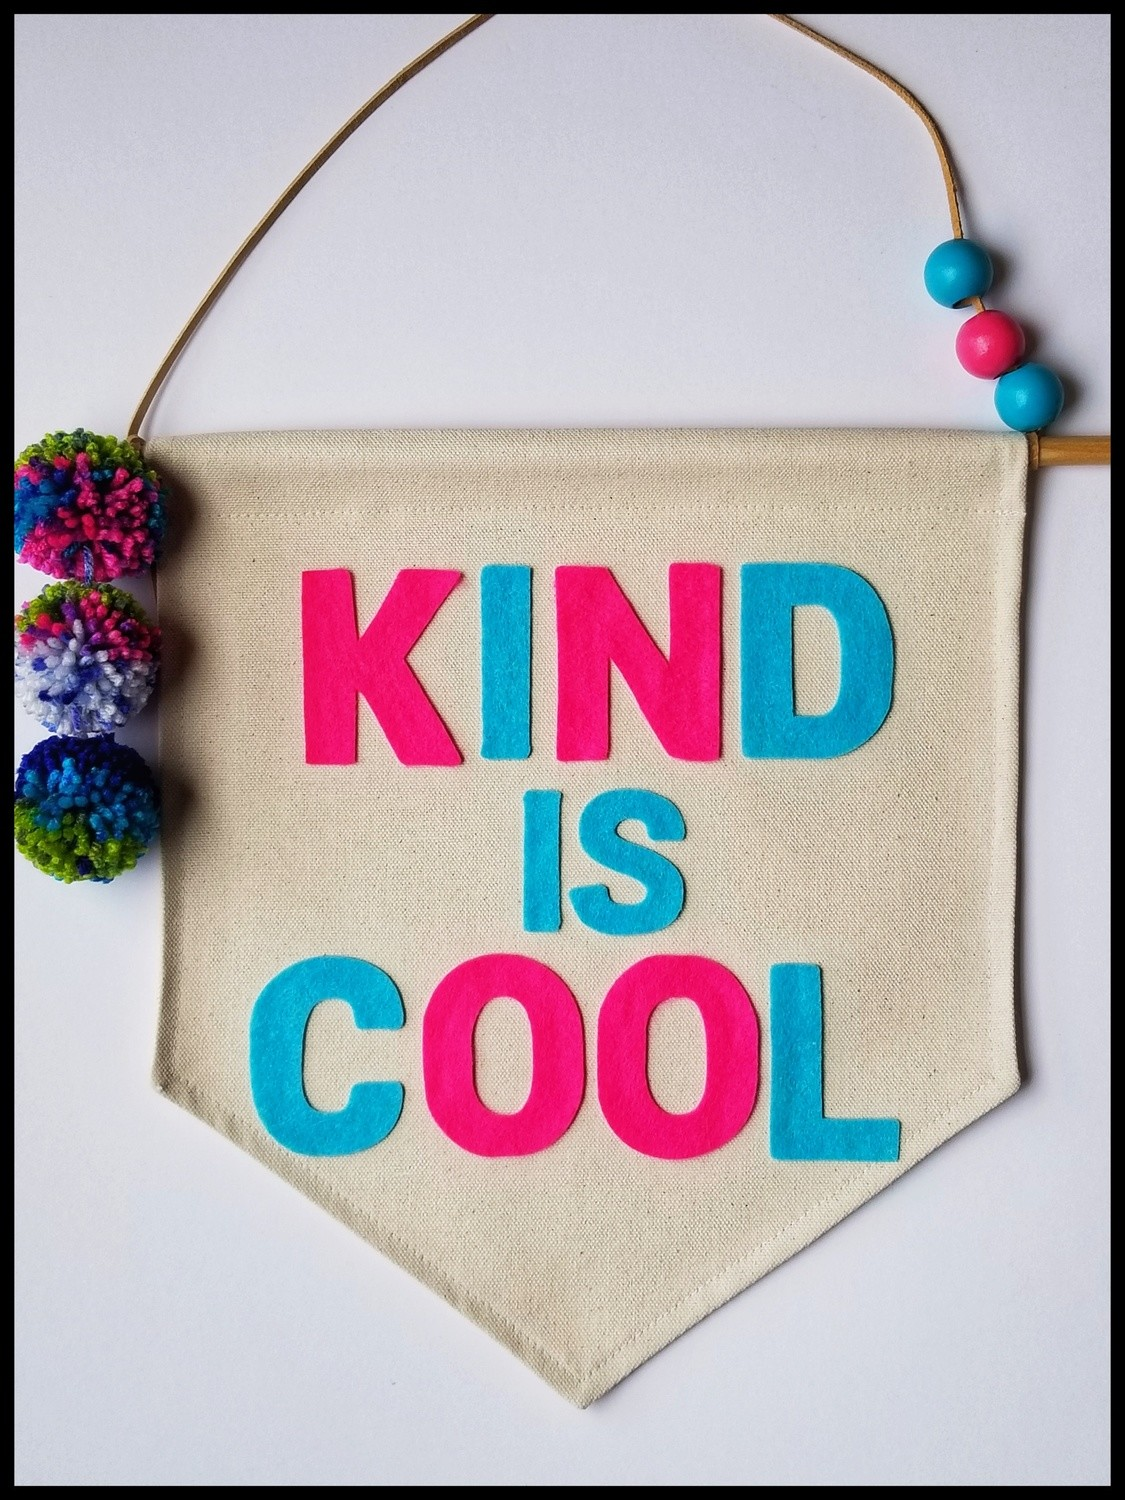 KIND IS COOL Large Banner, Handmade Canvas Banner, Kids Room Decor, Decorative Wall Banner, FREE SHIPPING